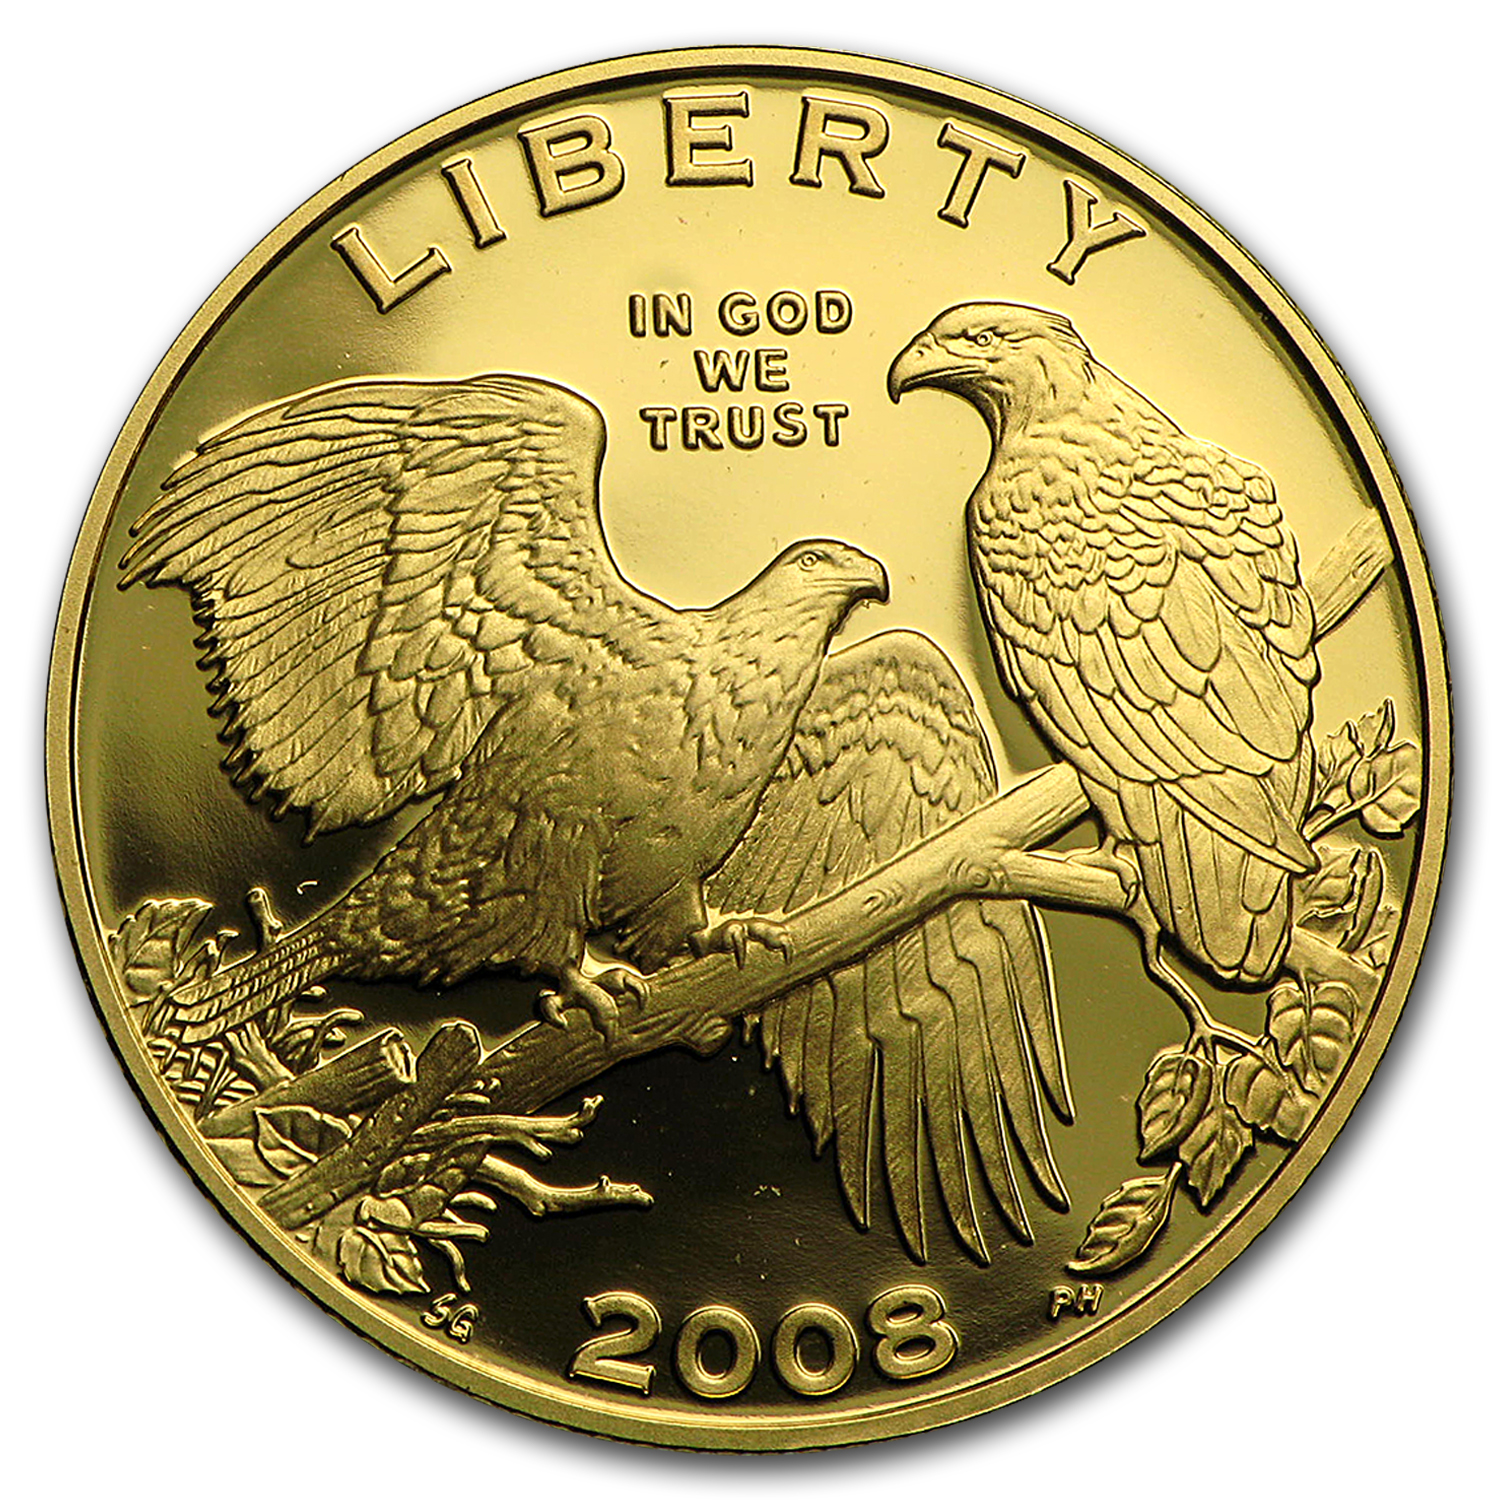 2008-W Gold $5 Commem Bald Eagle Proof (w/Box & COA)